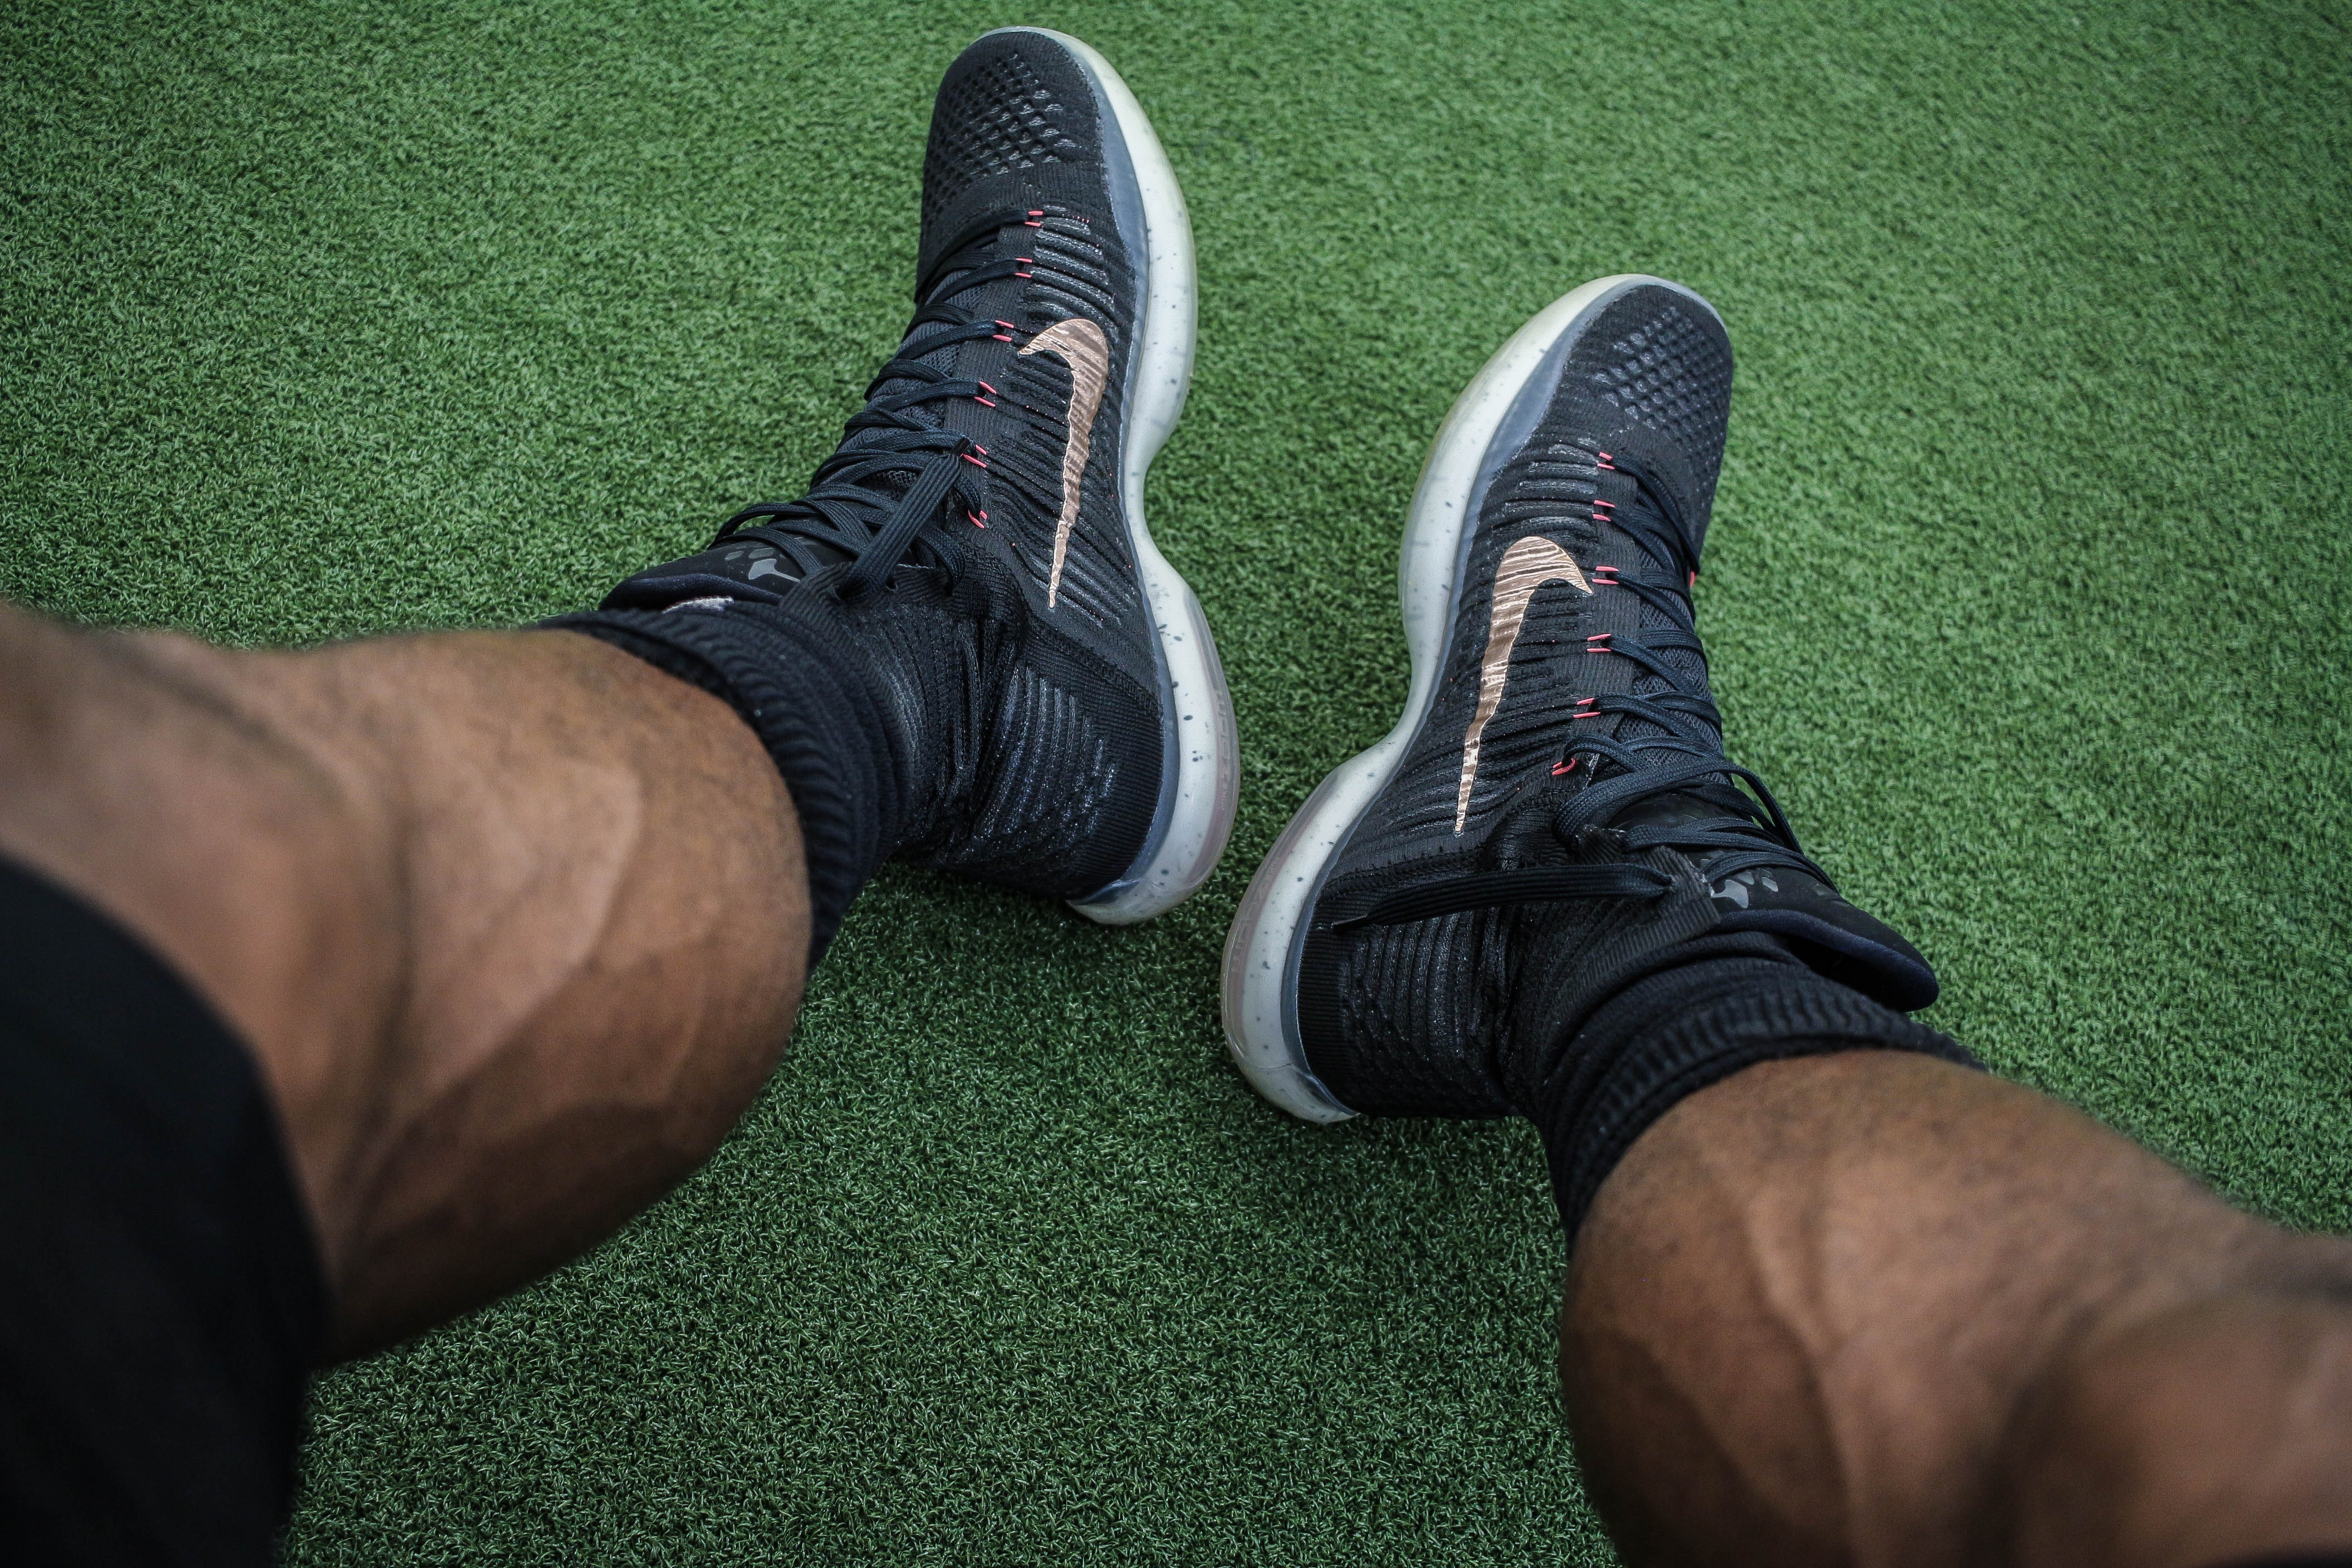 Staring down at a pair of black Nike shoes, worn by a vascular man